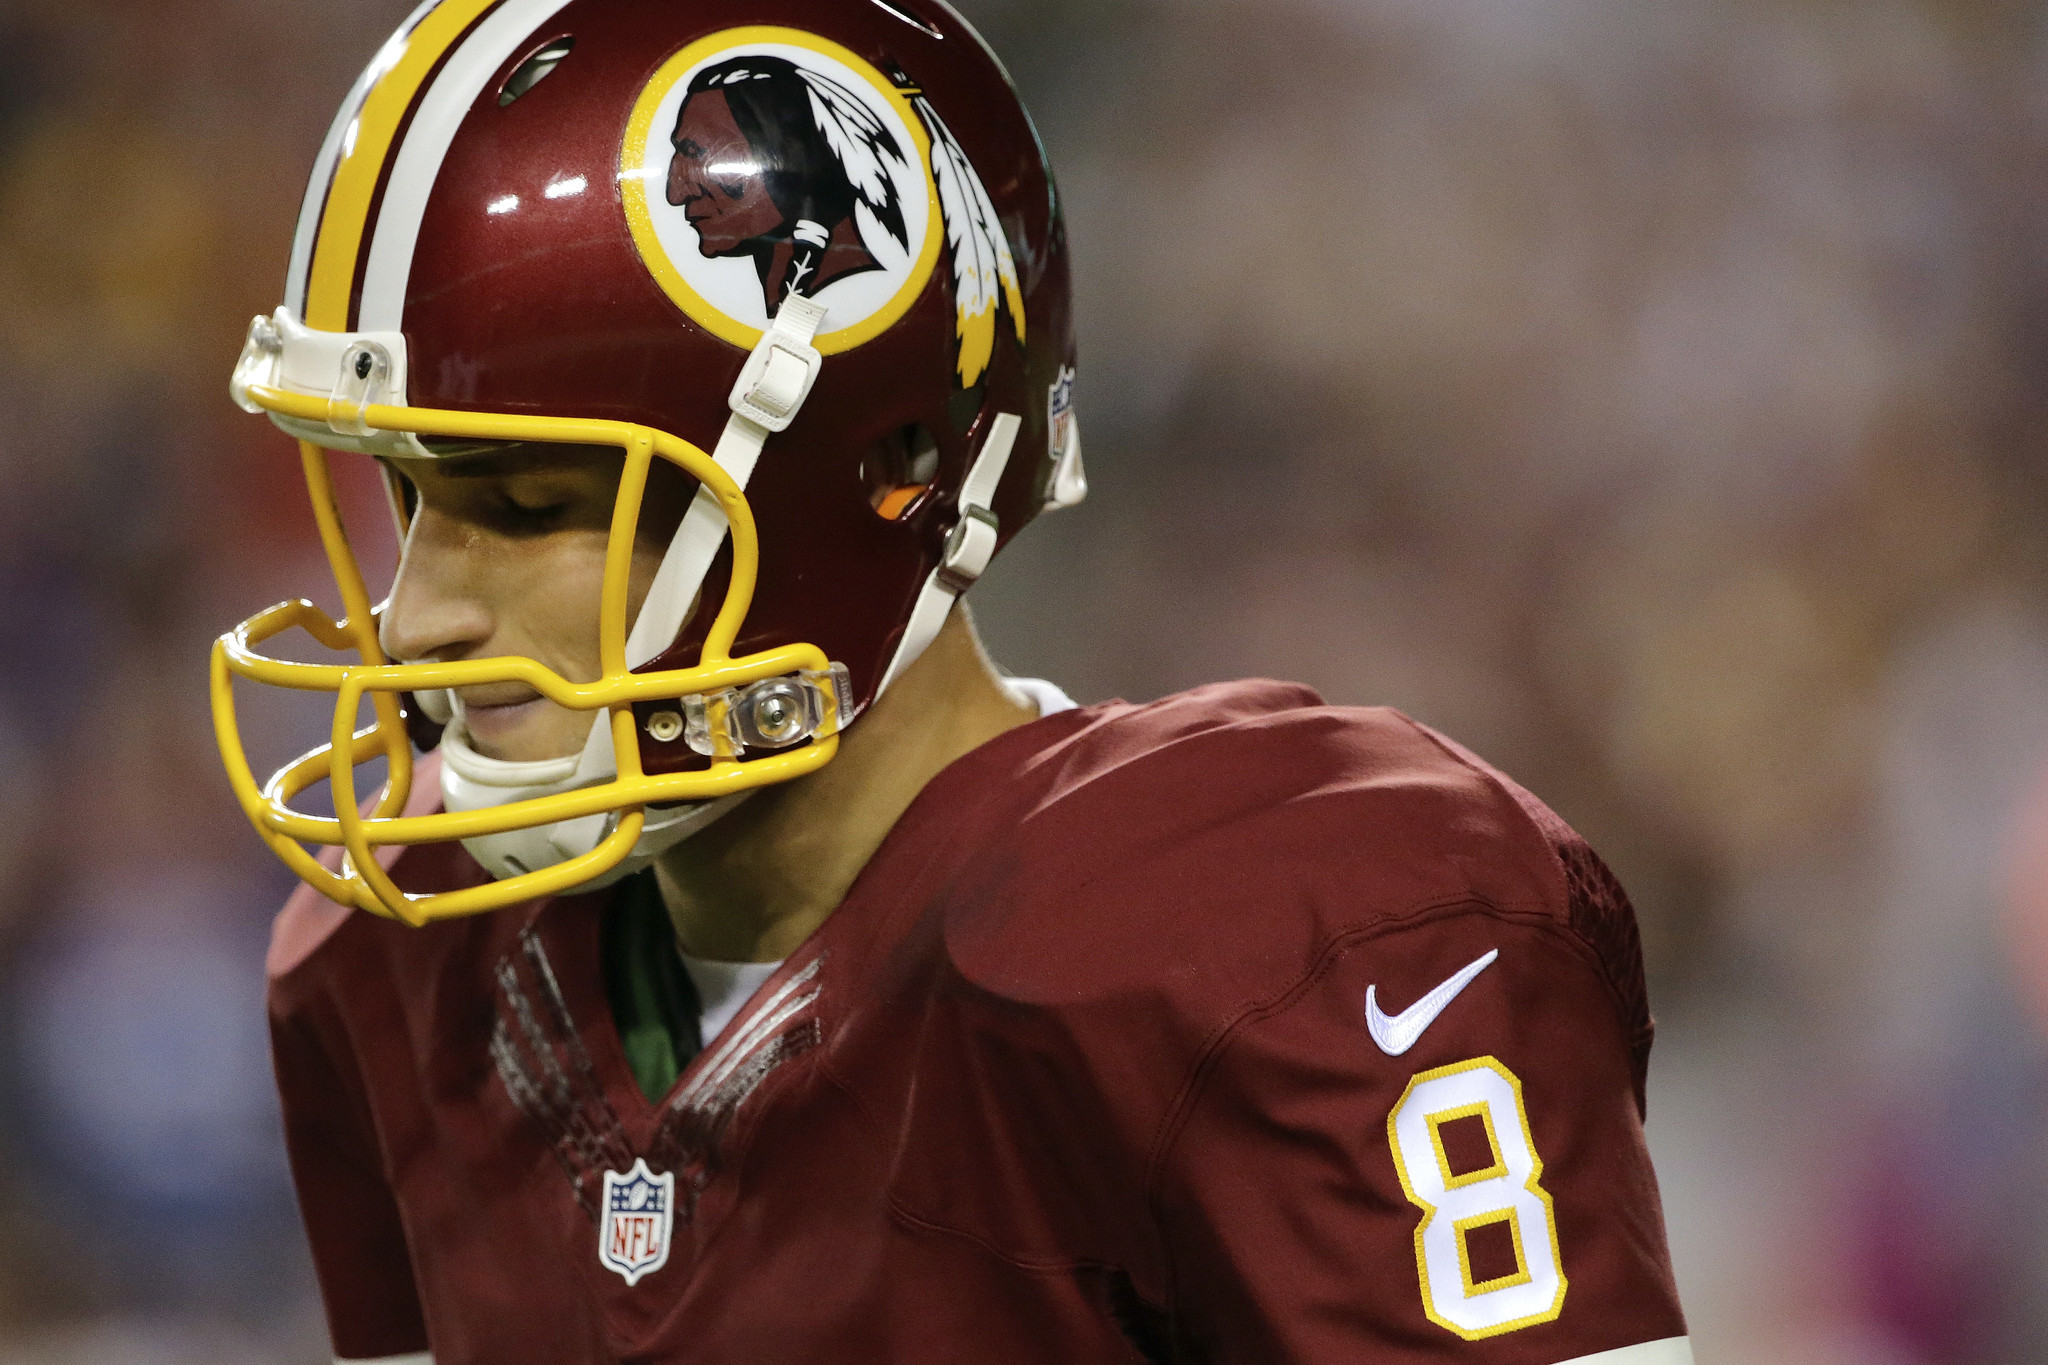 redskins football name is not a Dan snyder, the redskins' owner, has long promised to keep the name on saturday, lanny j davis, a lawyer for the team, pointed to polls that showed that fans overwhelmingly supported the team's name, and that native americans did not.